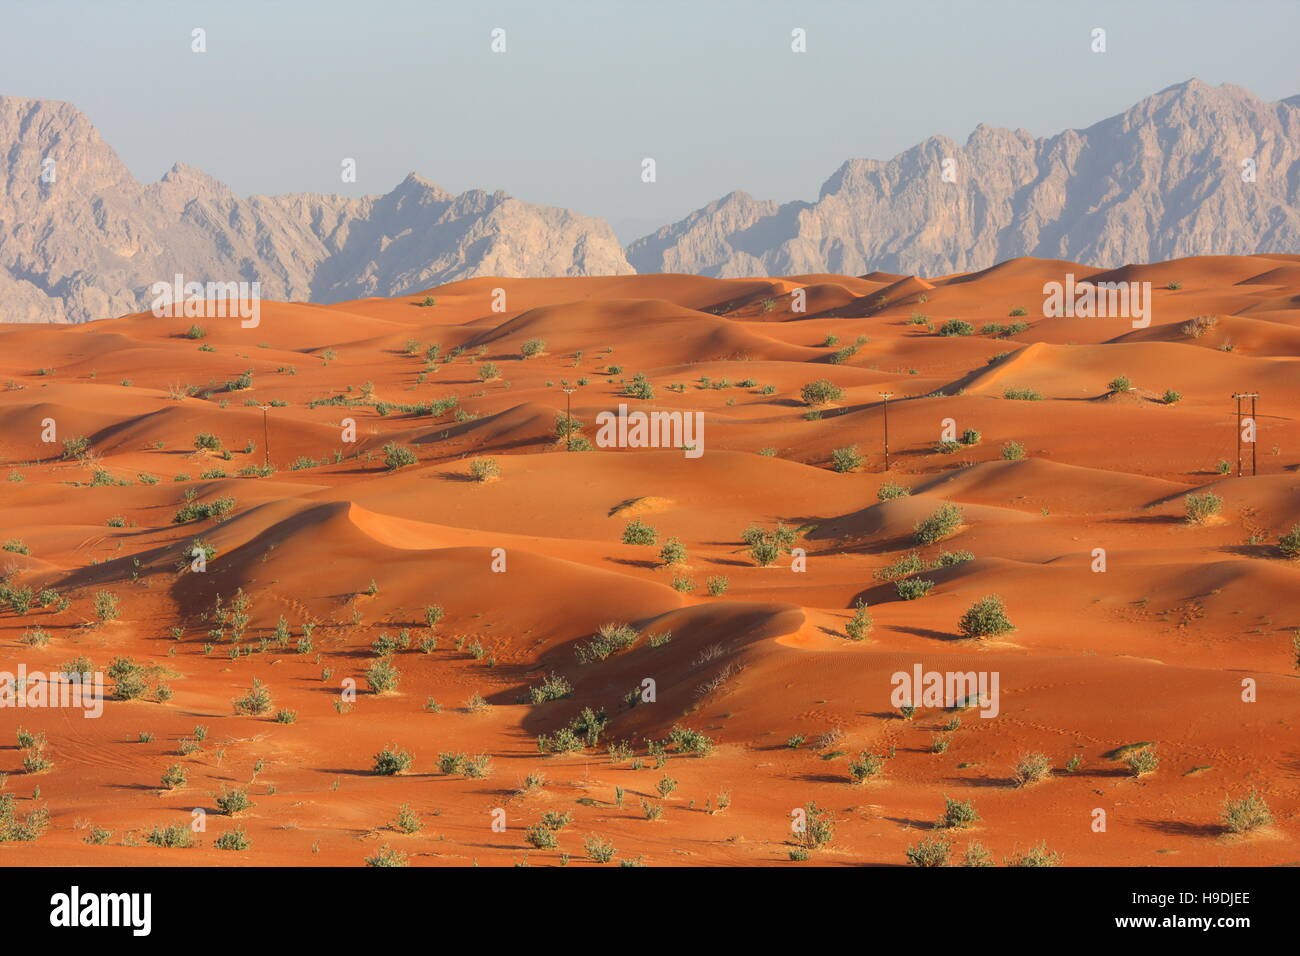 red-sand-dunes-abu-dhabi-emirate-united-arab-emirates-the-mountains-H9DJEE.jpg